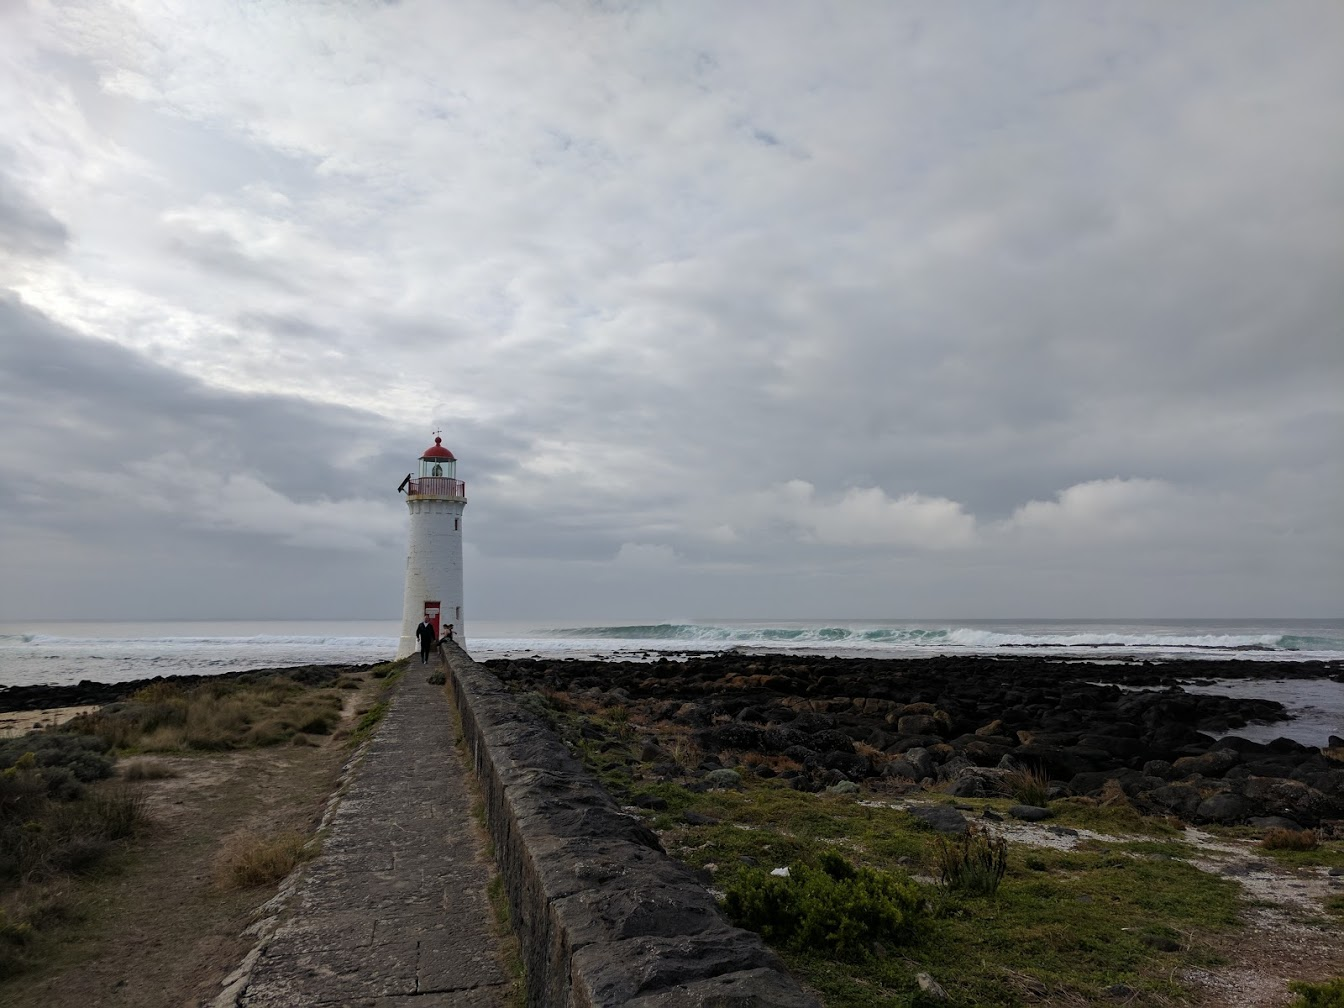 Port Fairy Lighthouse - Situated on Griffith Island, it is by no means Australia's tallest at only 12.5 metres tall. To get there you have to walk for around ten minutes and there is a great surf break at the lighthouse (no points given to those who can guess the name of this wave).